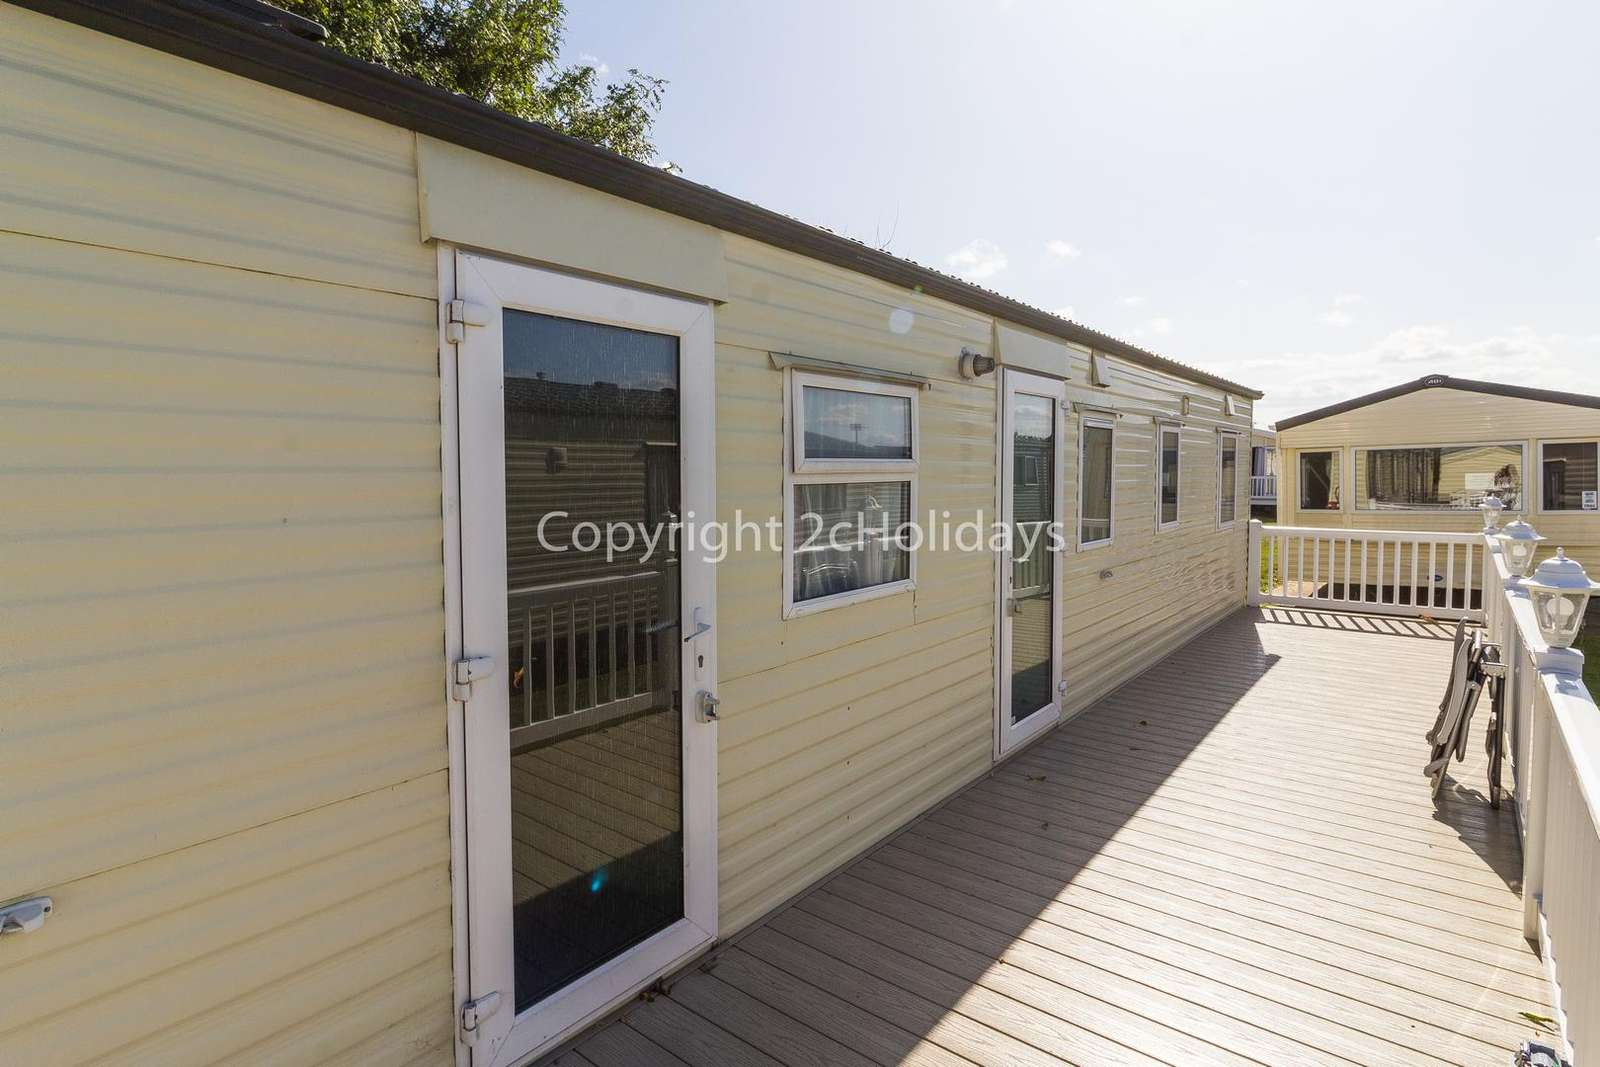 So many families enjoyed their stay at this lovely caravan at Broadland Sands Holiday Park